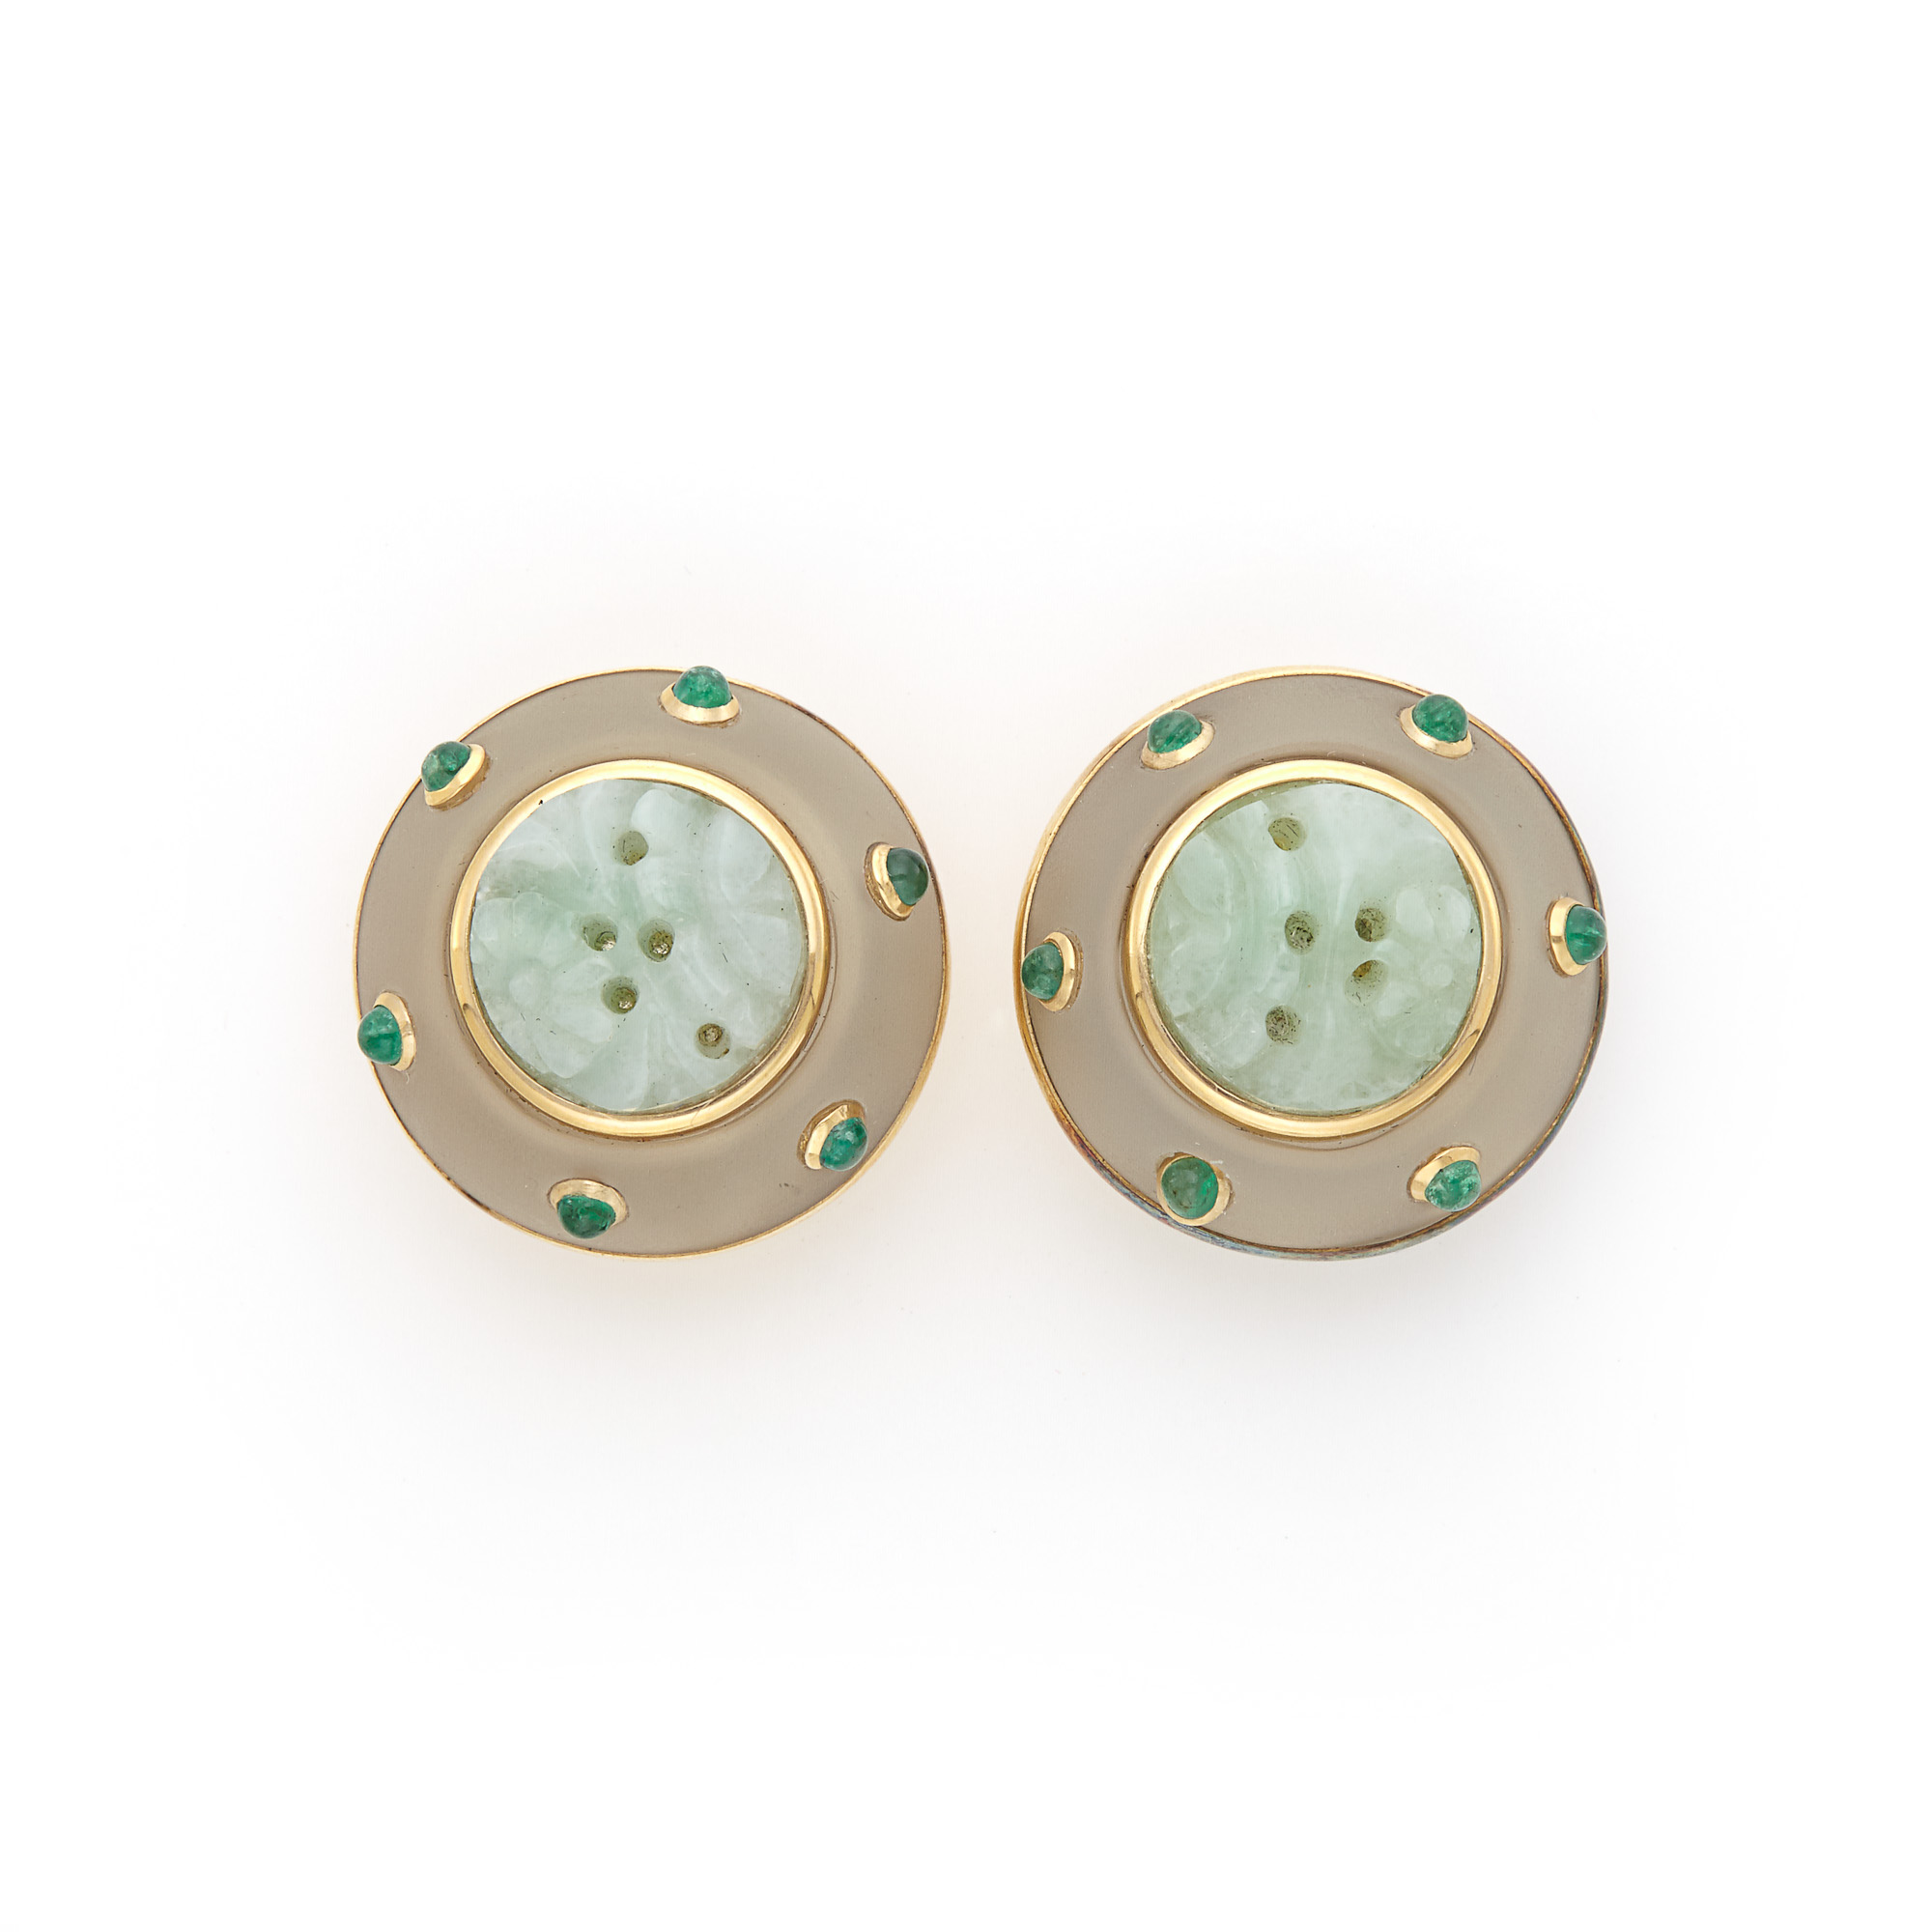 Lot image - Pair of Gold, Frosted Rock Crystal, Carved Jade, and Cabochon Emerald Earclips